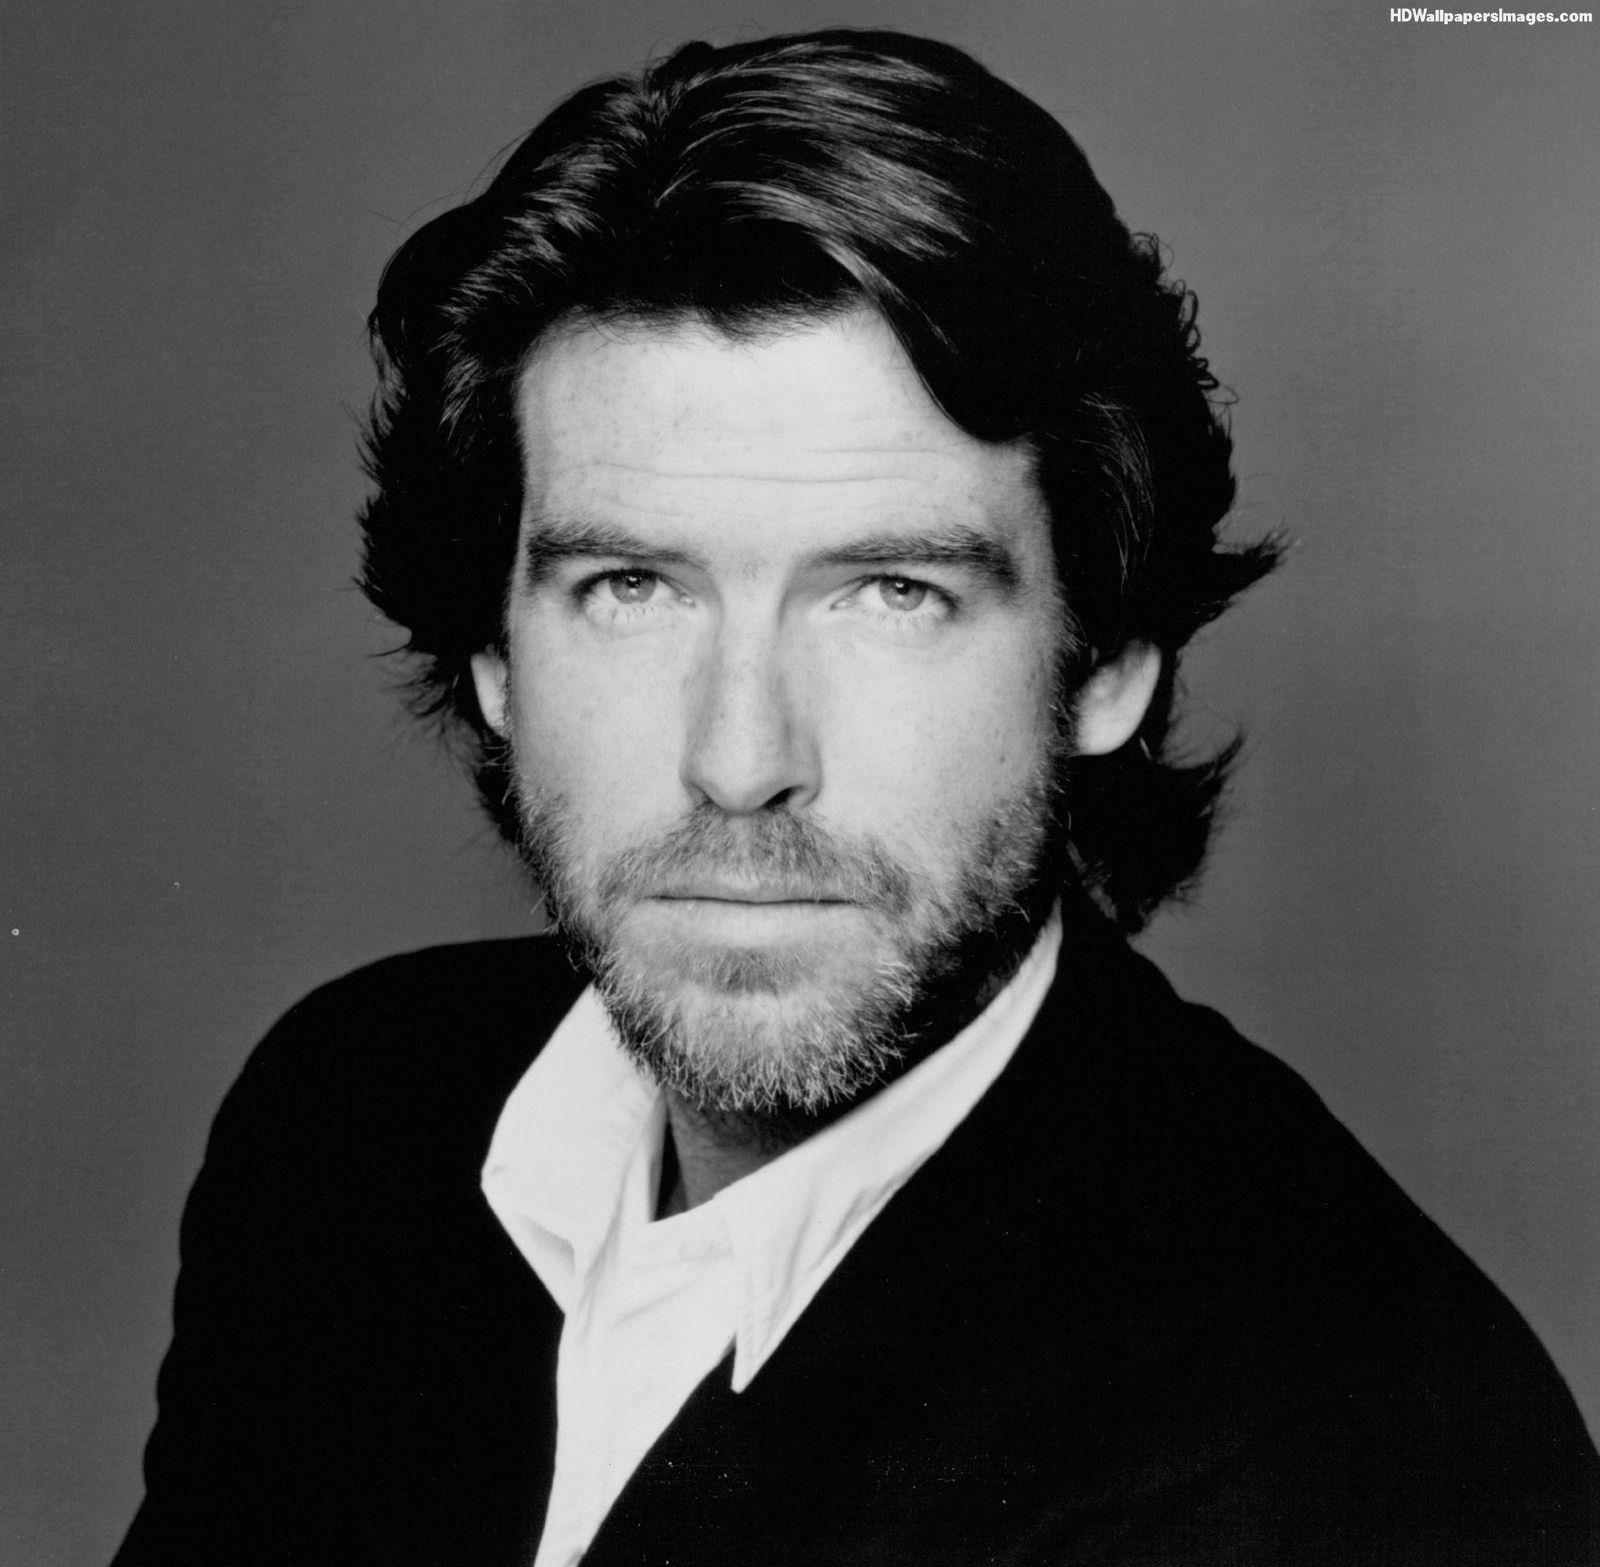 Pierce Brosnan Young Image